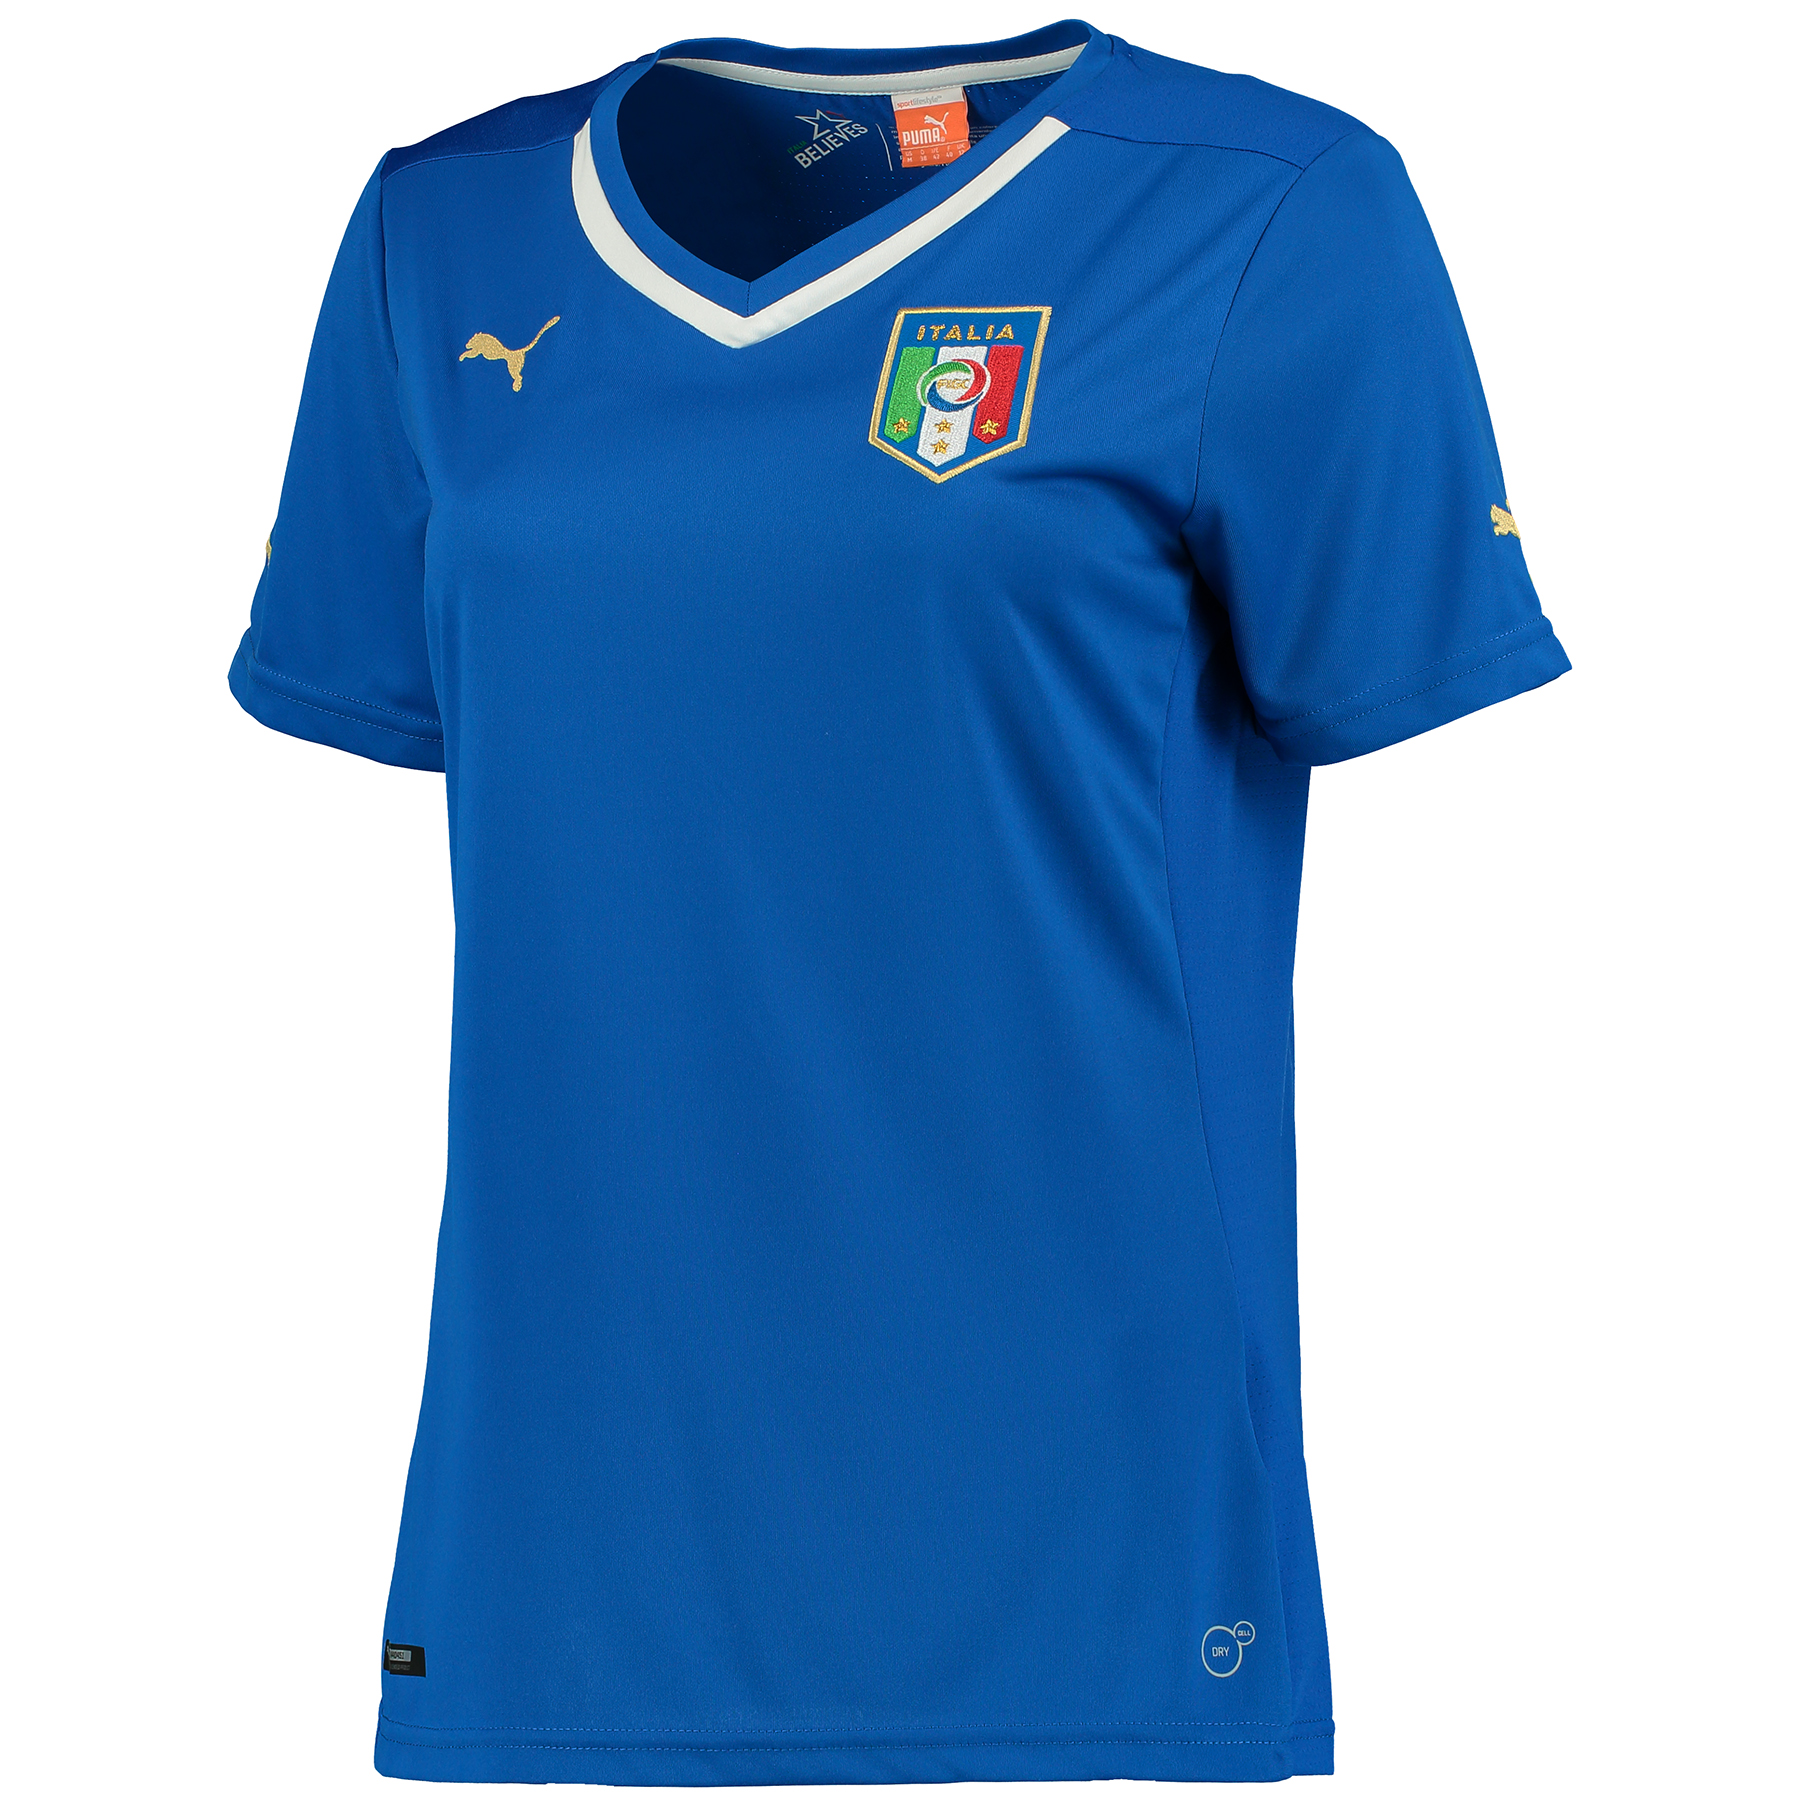 Italy Home Shirt 2013/14 - Womens